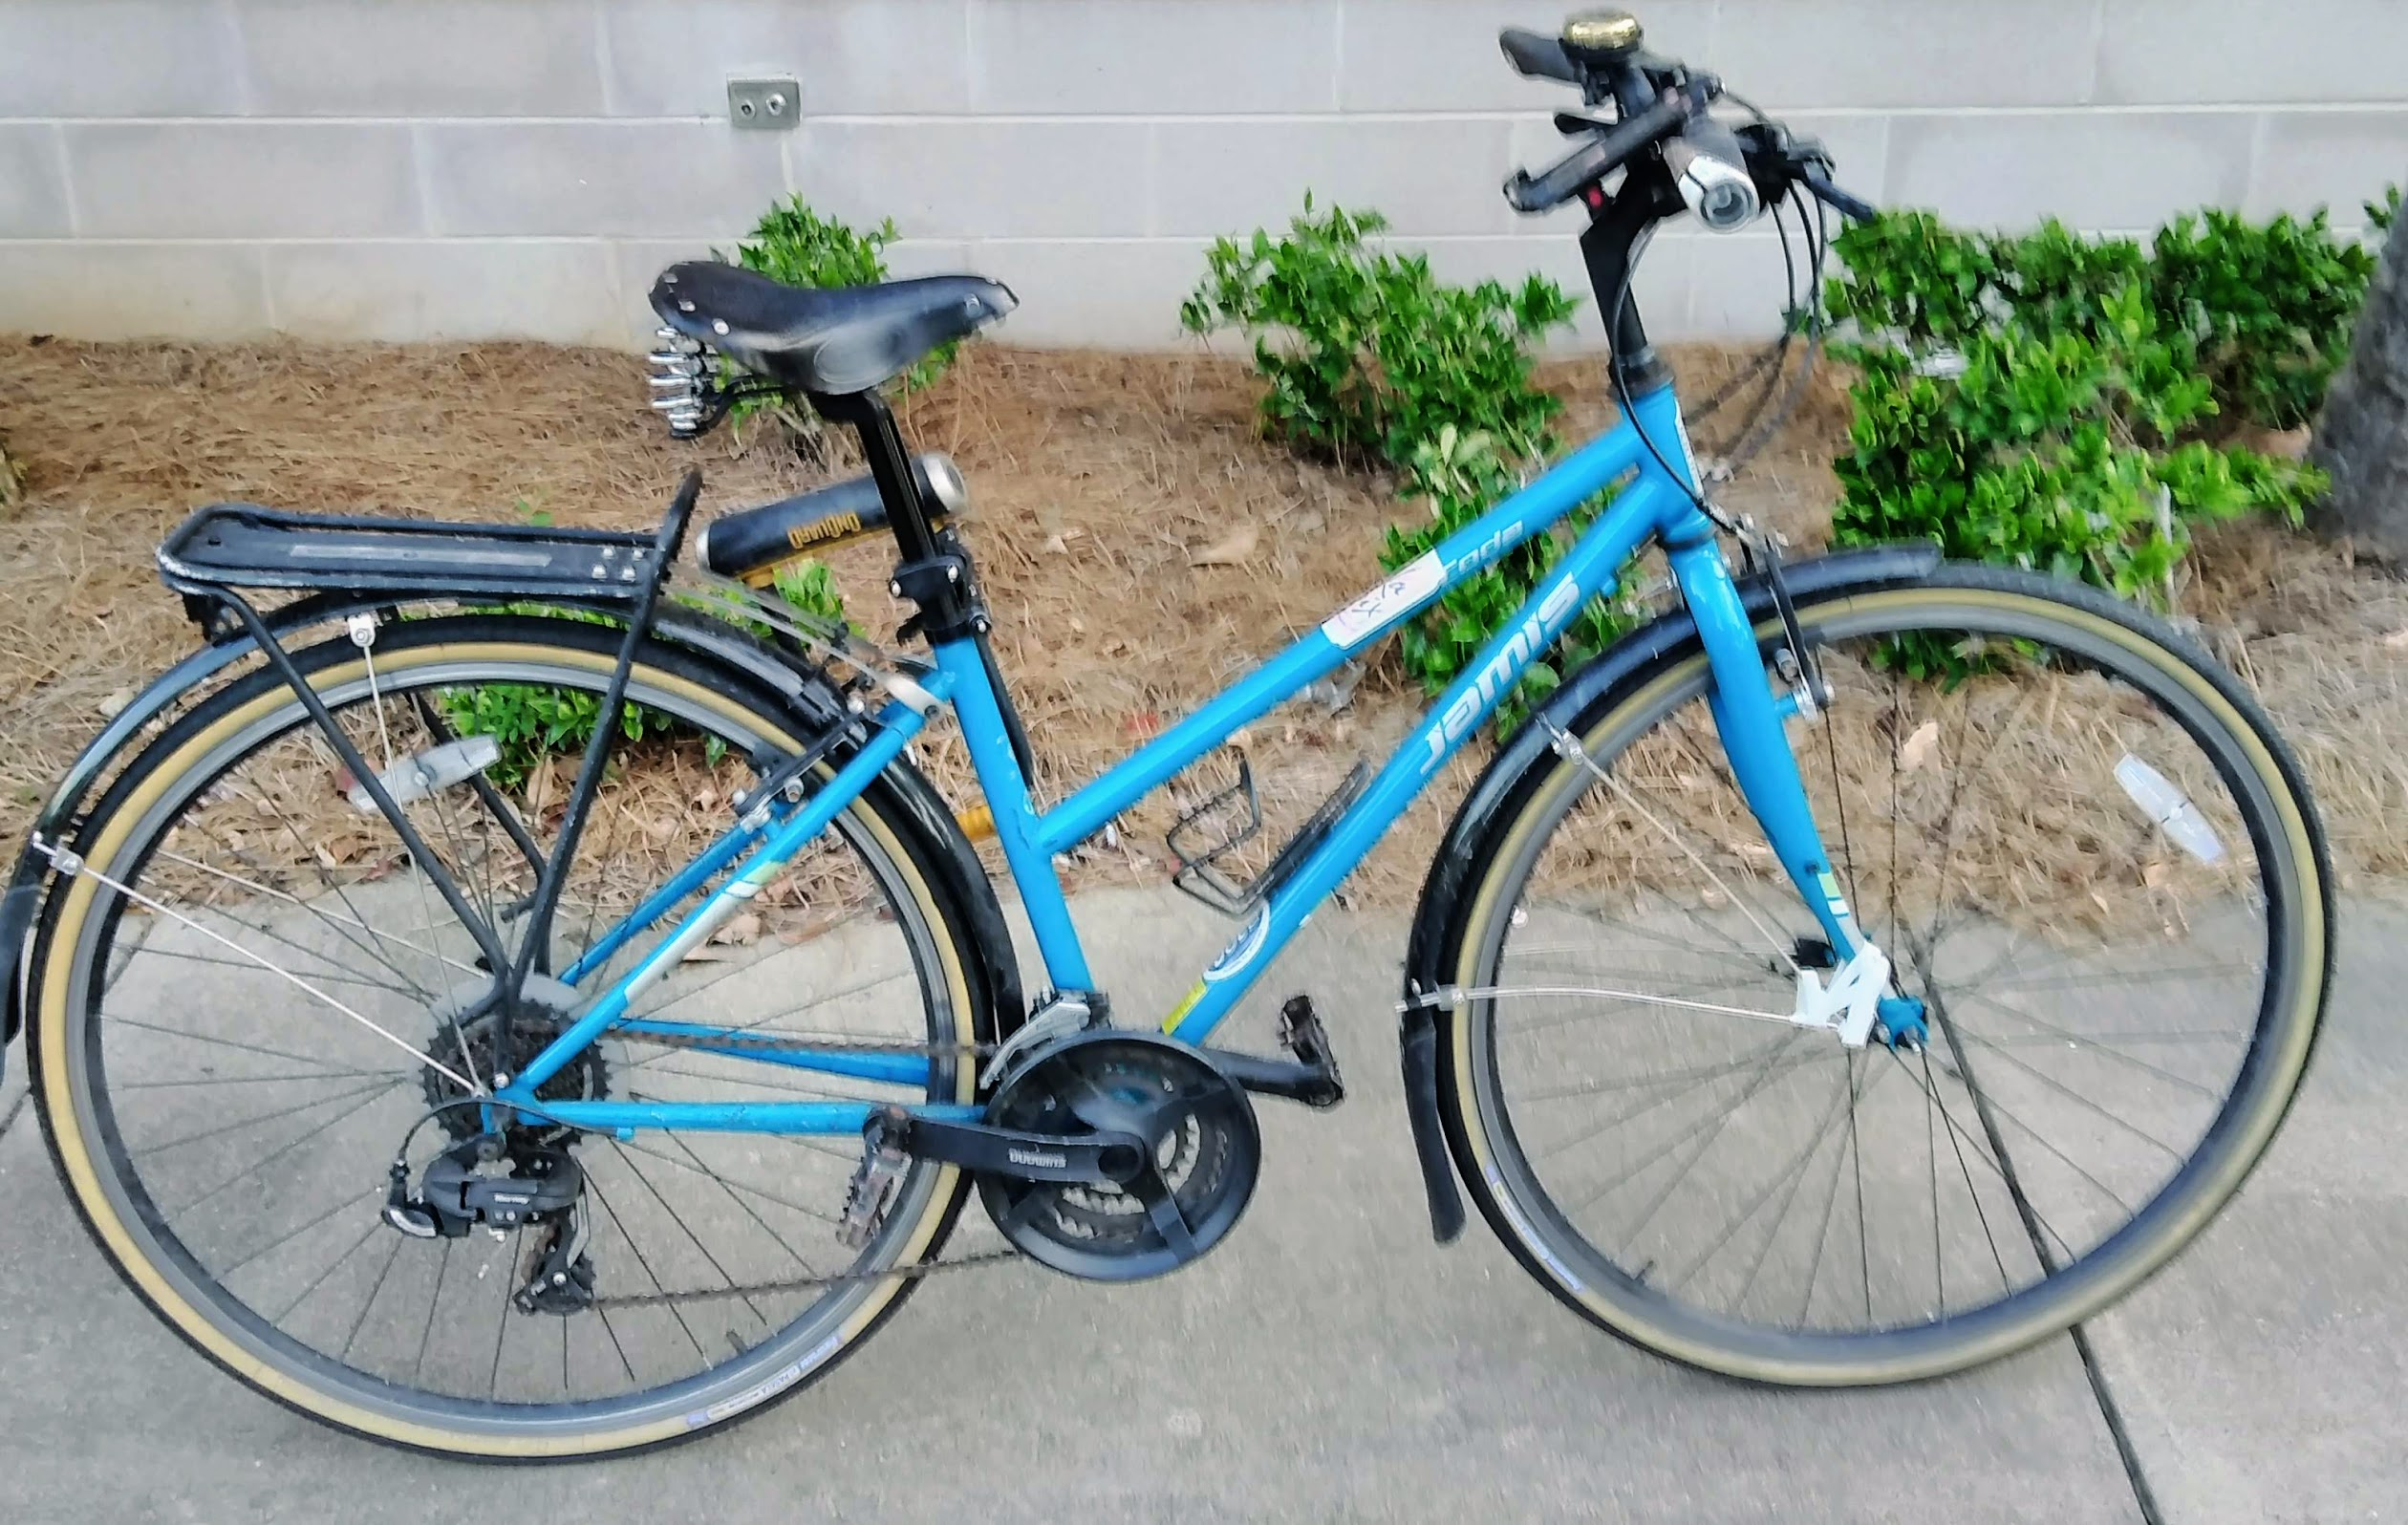 A blue hybrid bike with step-through frame